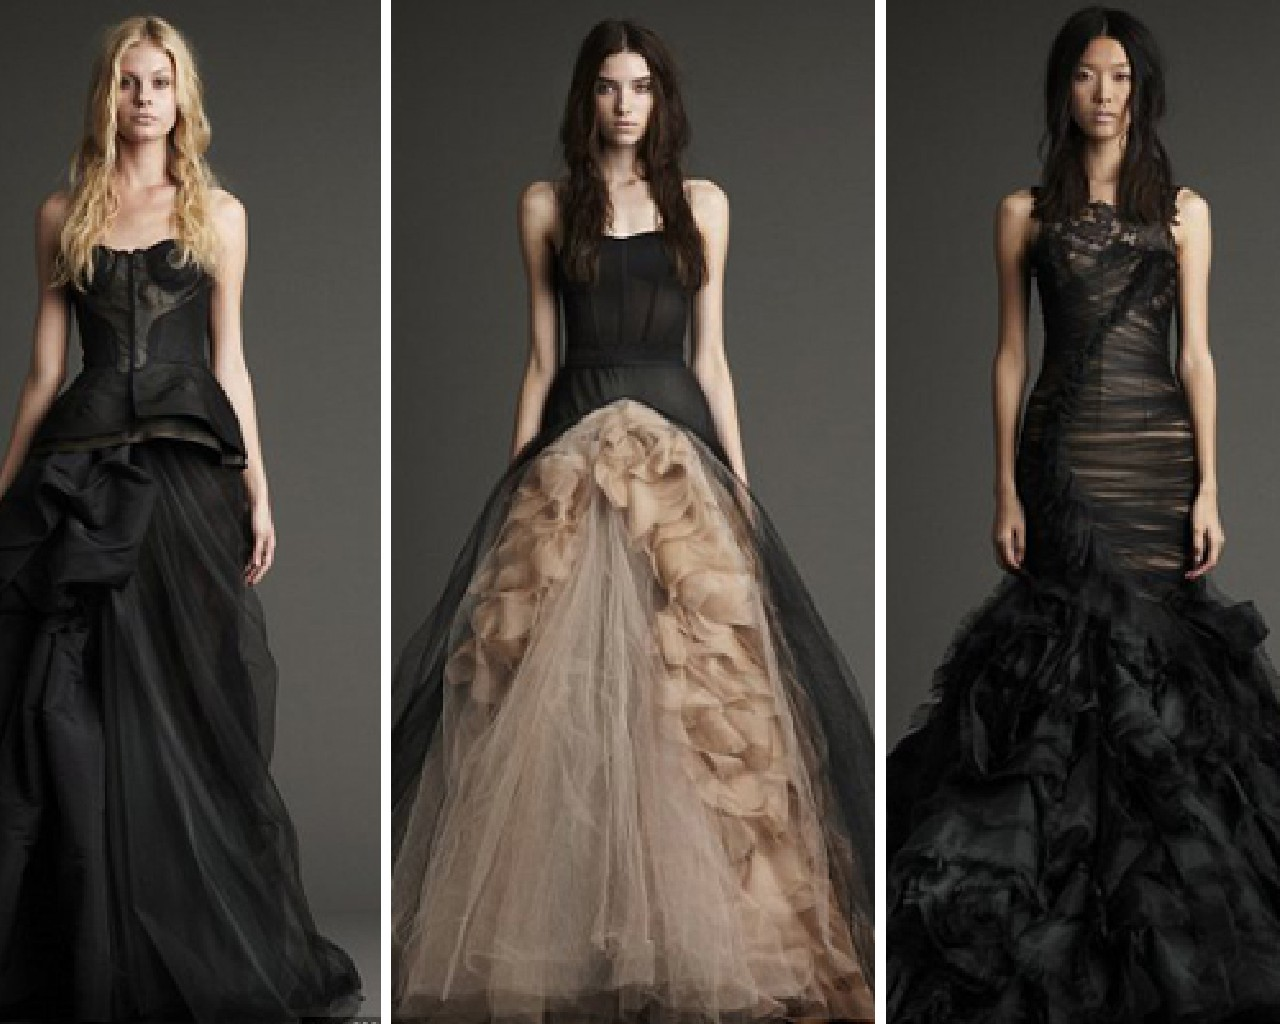 Vera-Wang-Black-Wedding-Dress-Collection-2012